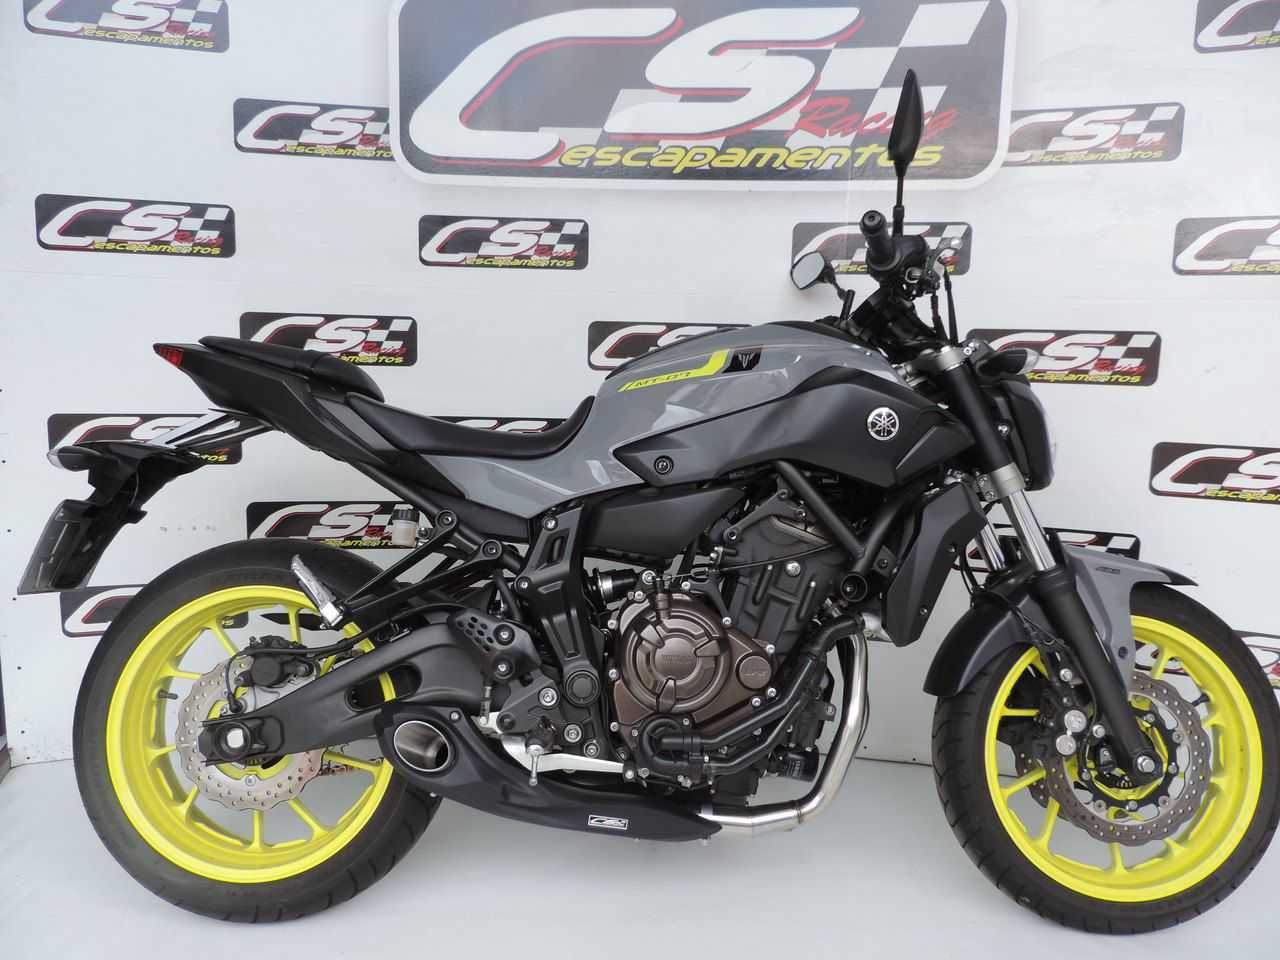 Escapamento Esportivo Full | CS Racing | Yamaha MT-07